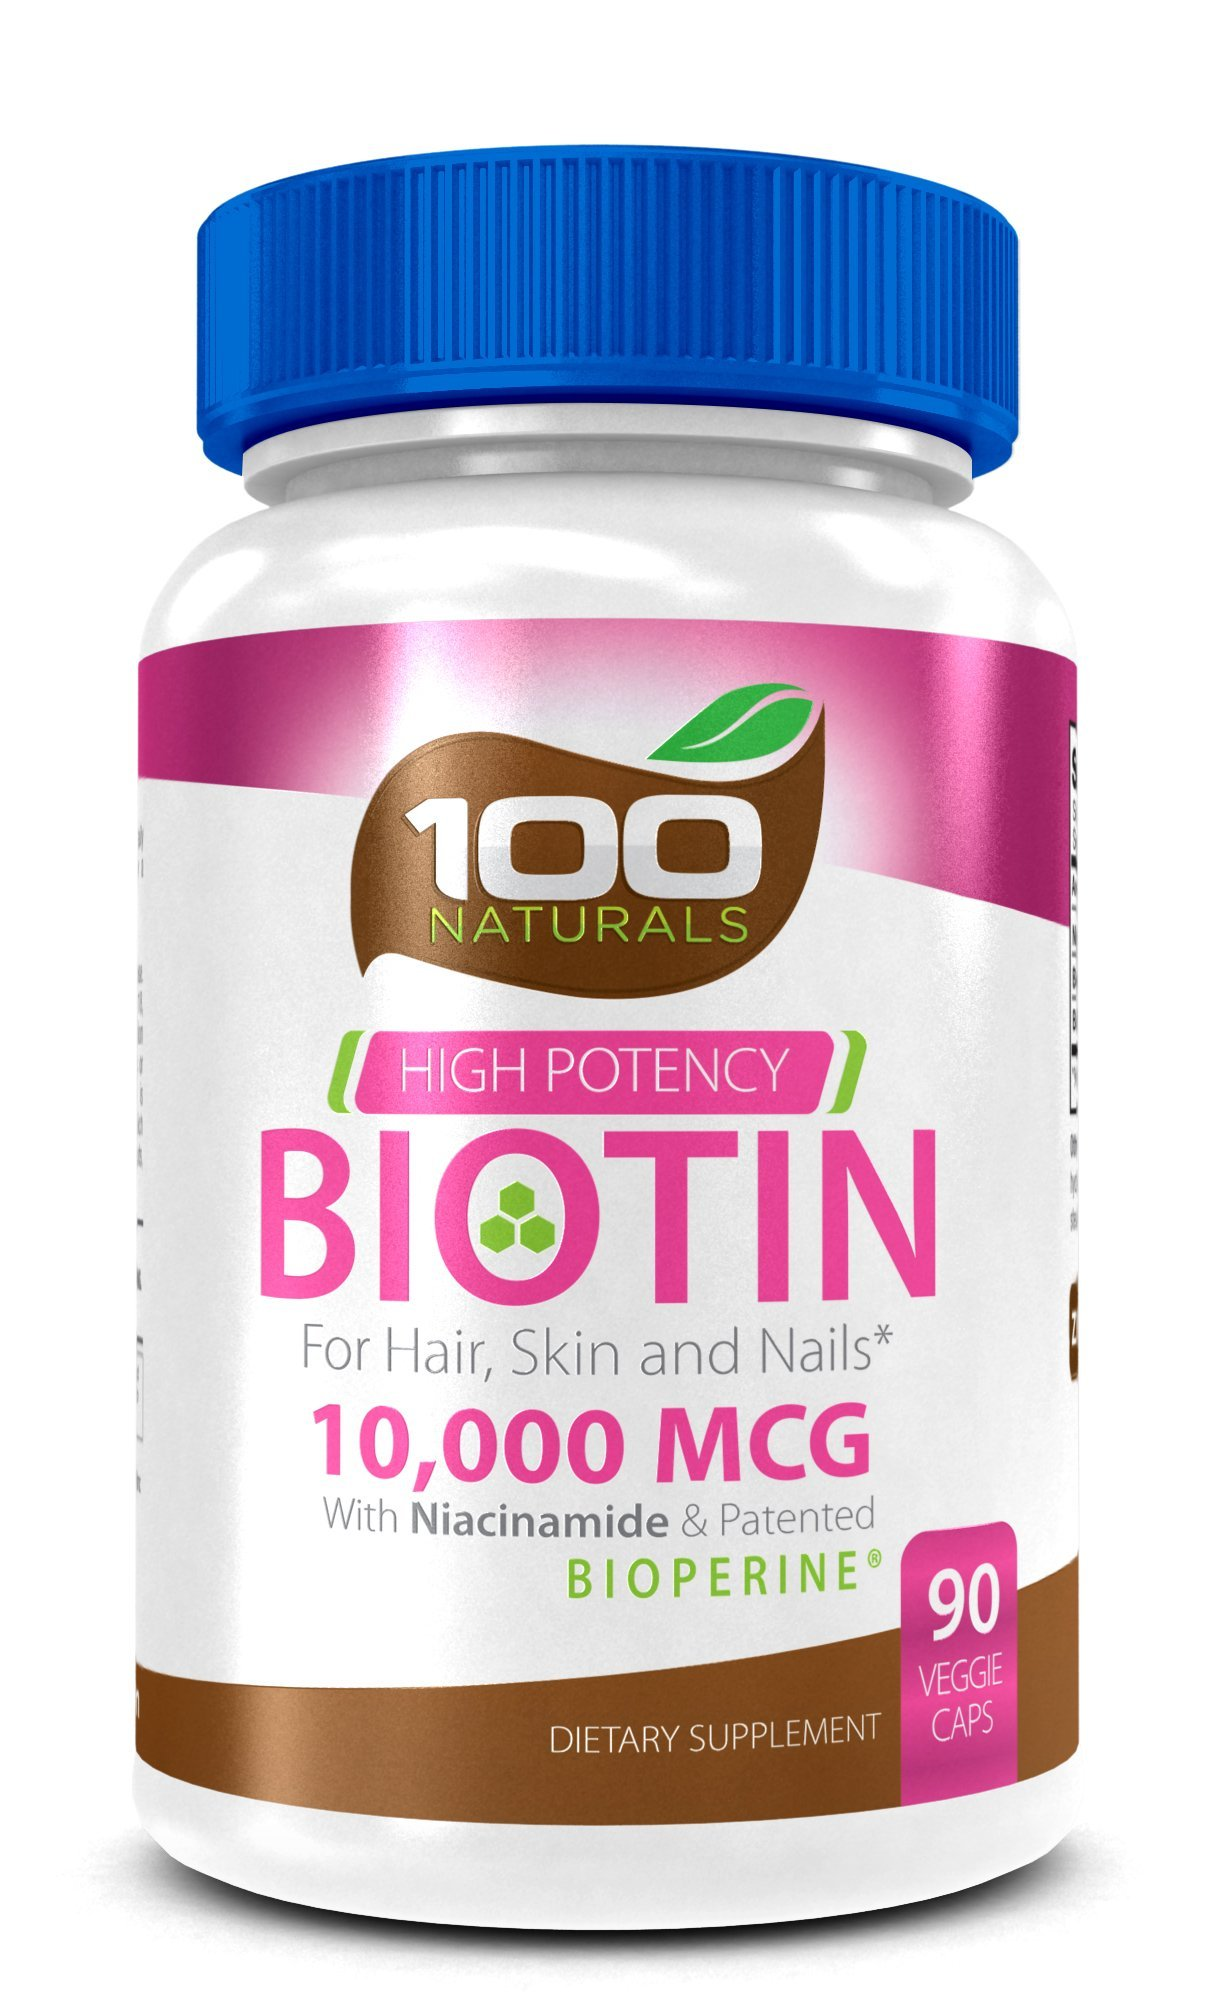 Pure Biotin 10,000 MCG - Maximum Strength Vitamin B - Complex Supplement to Reduce Hair Loss, Improve Hair, Skin and Nail Health for Women and Men– 3 Month Supply- By 100 Naturals